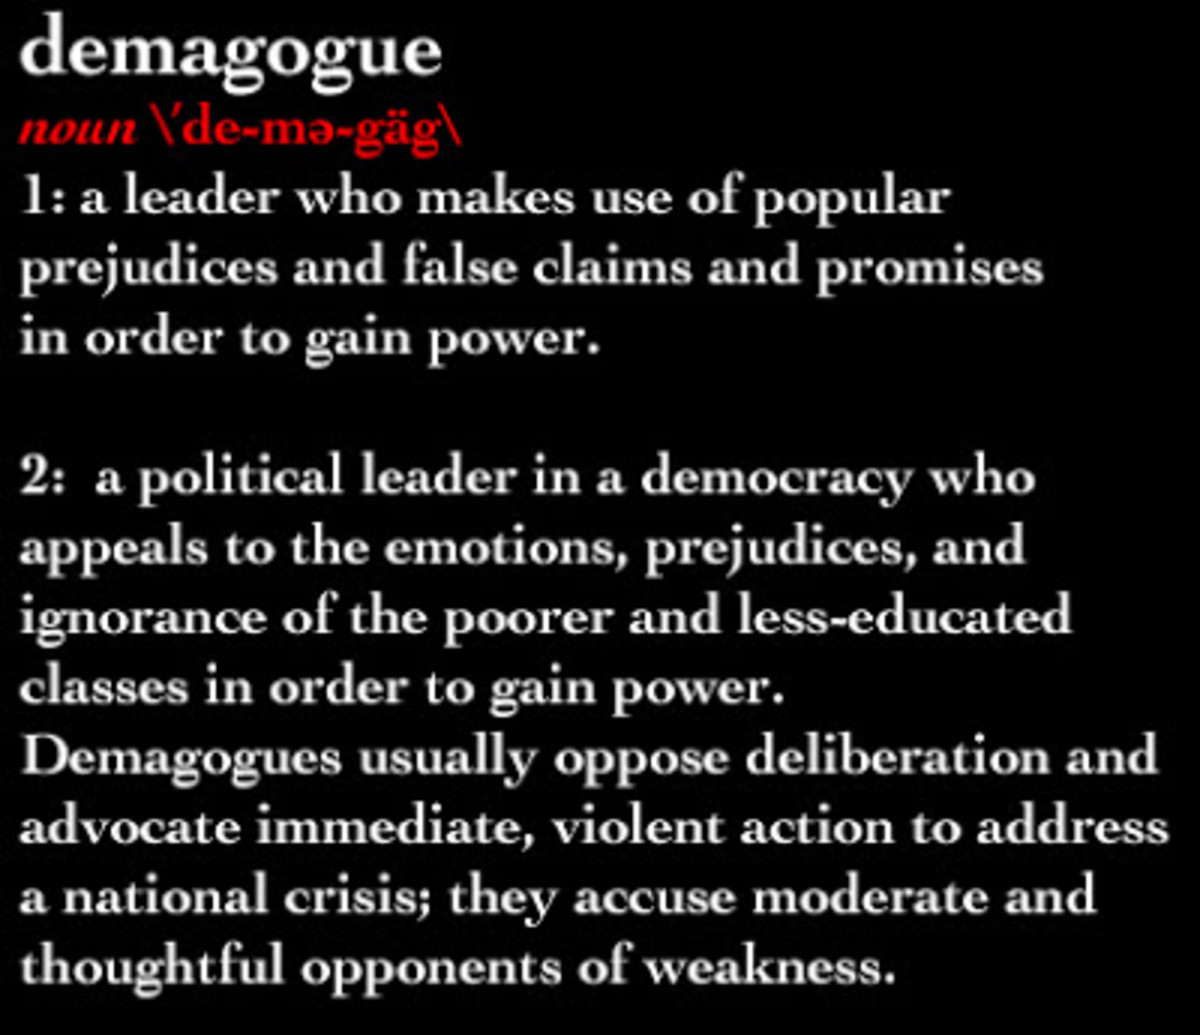 ideologues-are-all-fascists-in-disguise